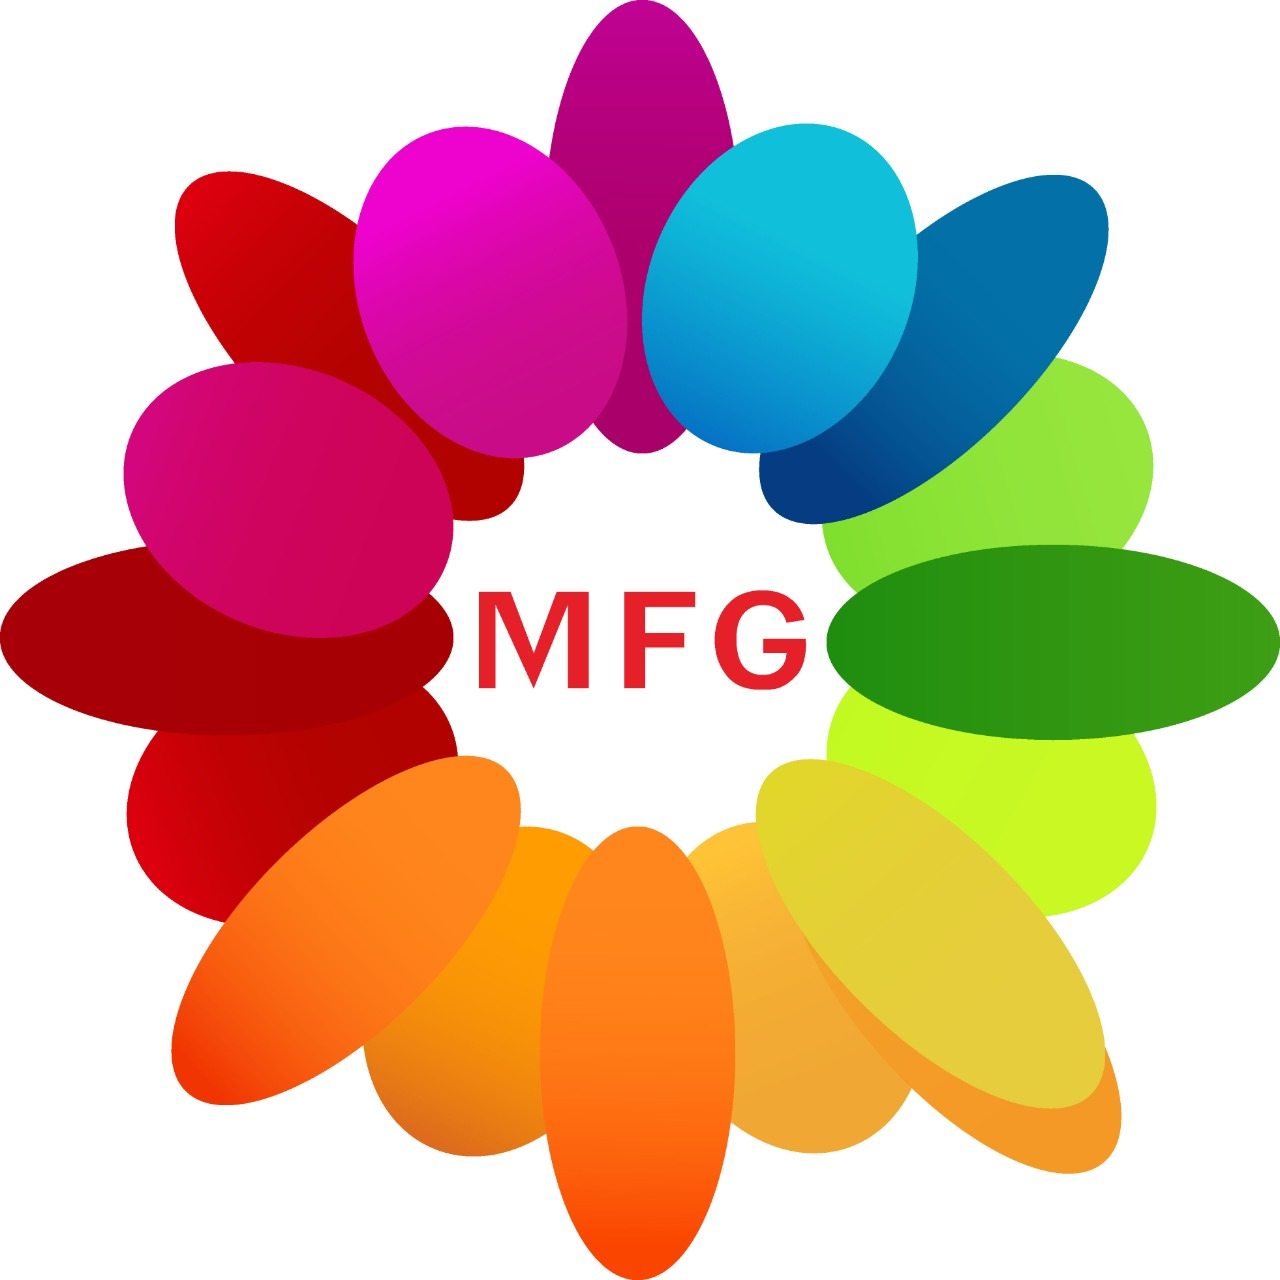 10 Red and yellow lilies in glass vase